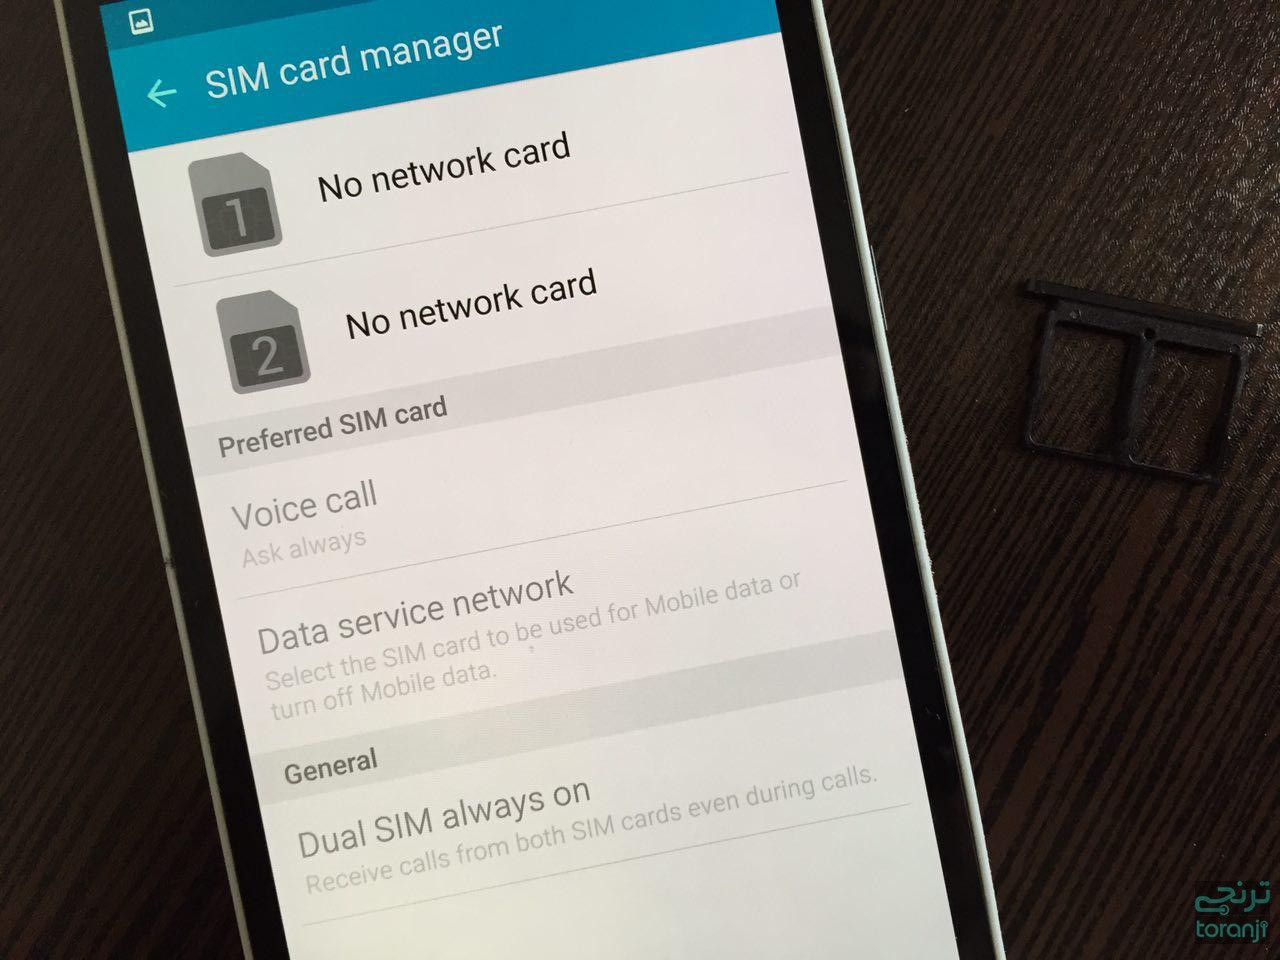 Dual sim card manager apk | SIM Card Manager app for android  2019-08-06